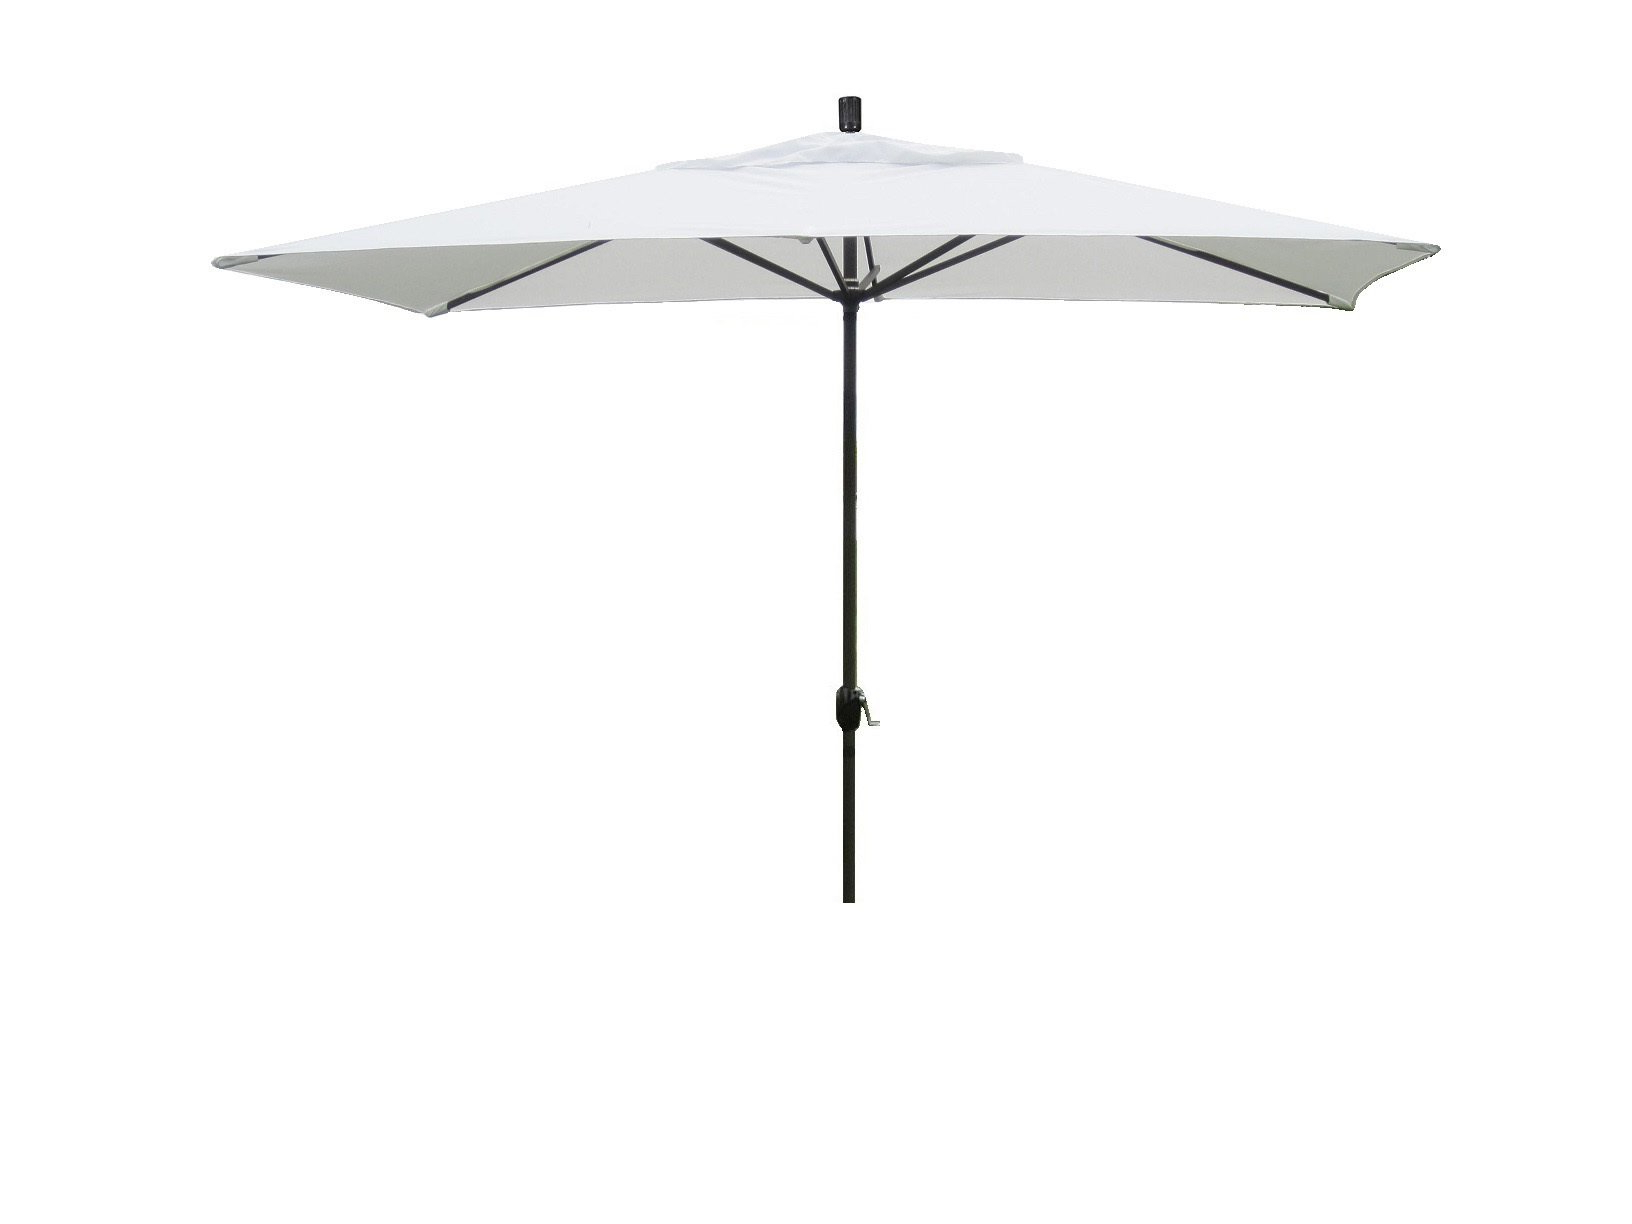 Gries Rectangular Market Umbrellas With Regard To Latest Northfleet 10' X 6' Rectangular Market Umbrella (View 5 of 20)